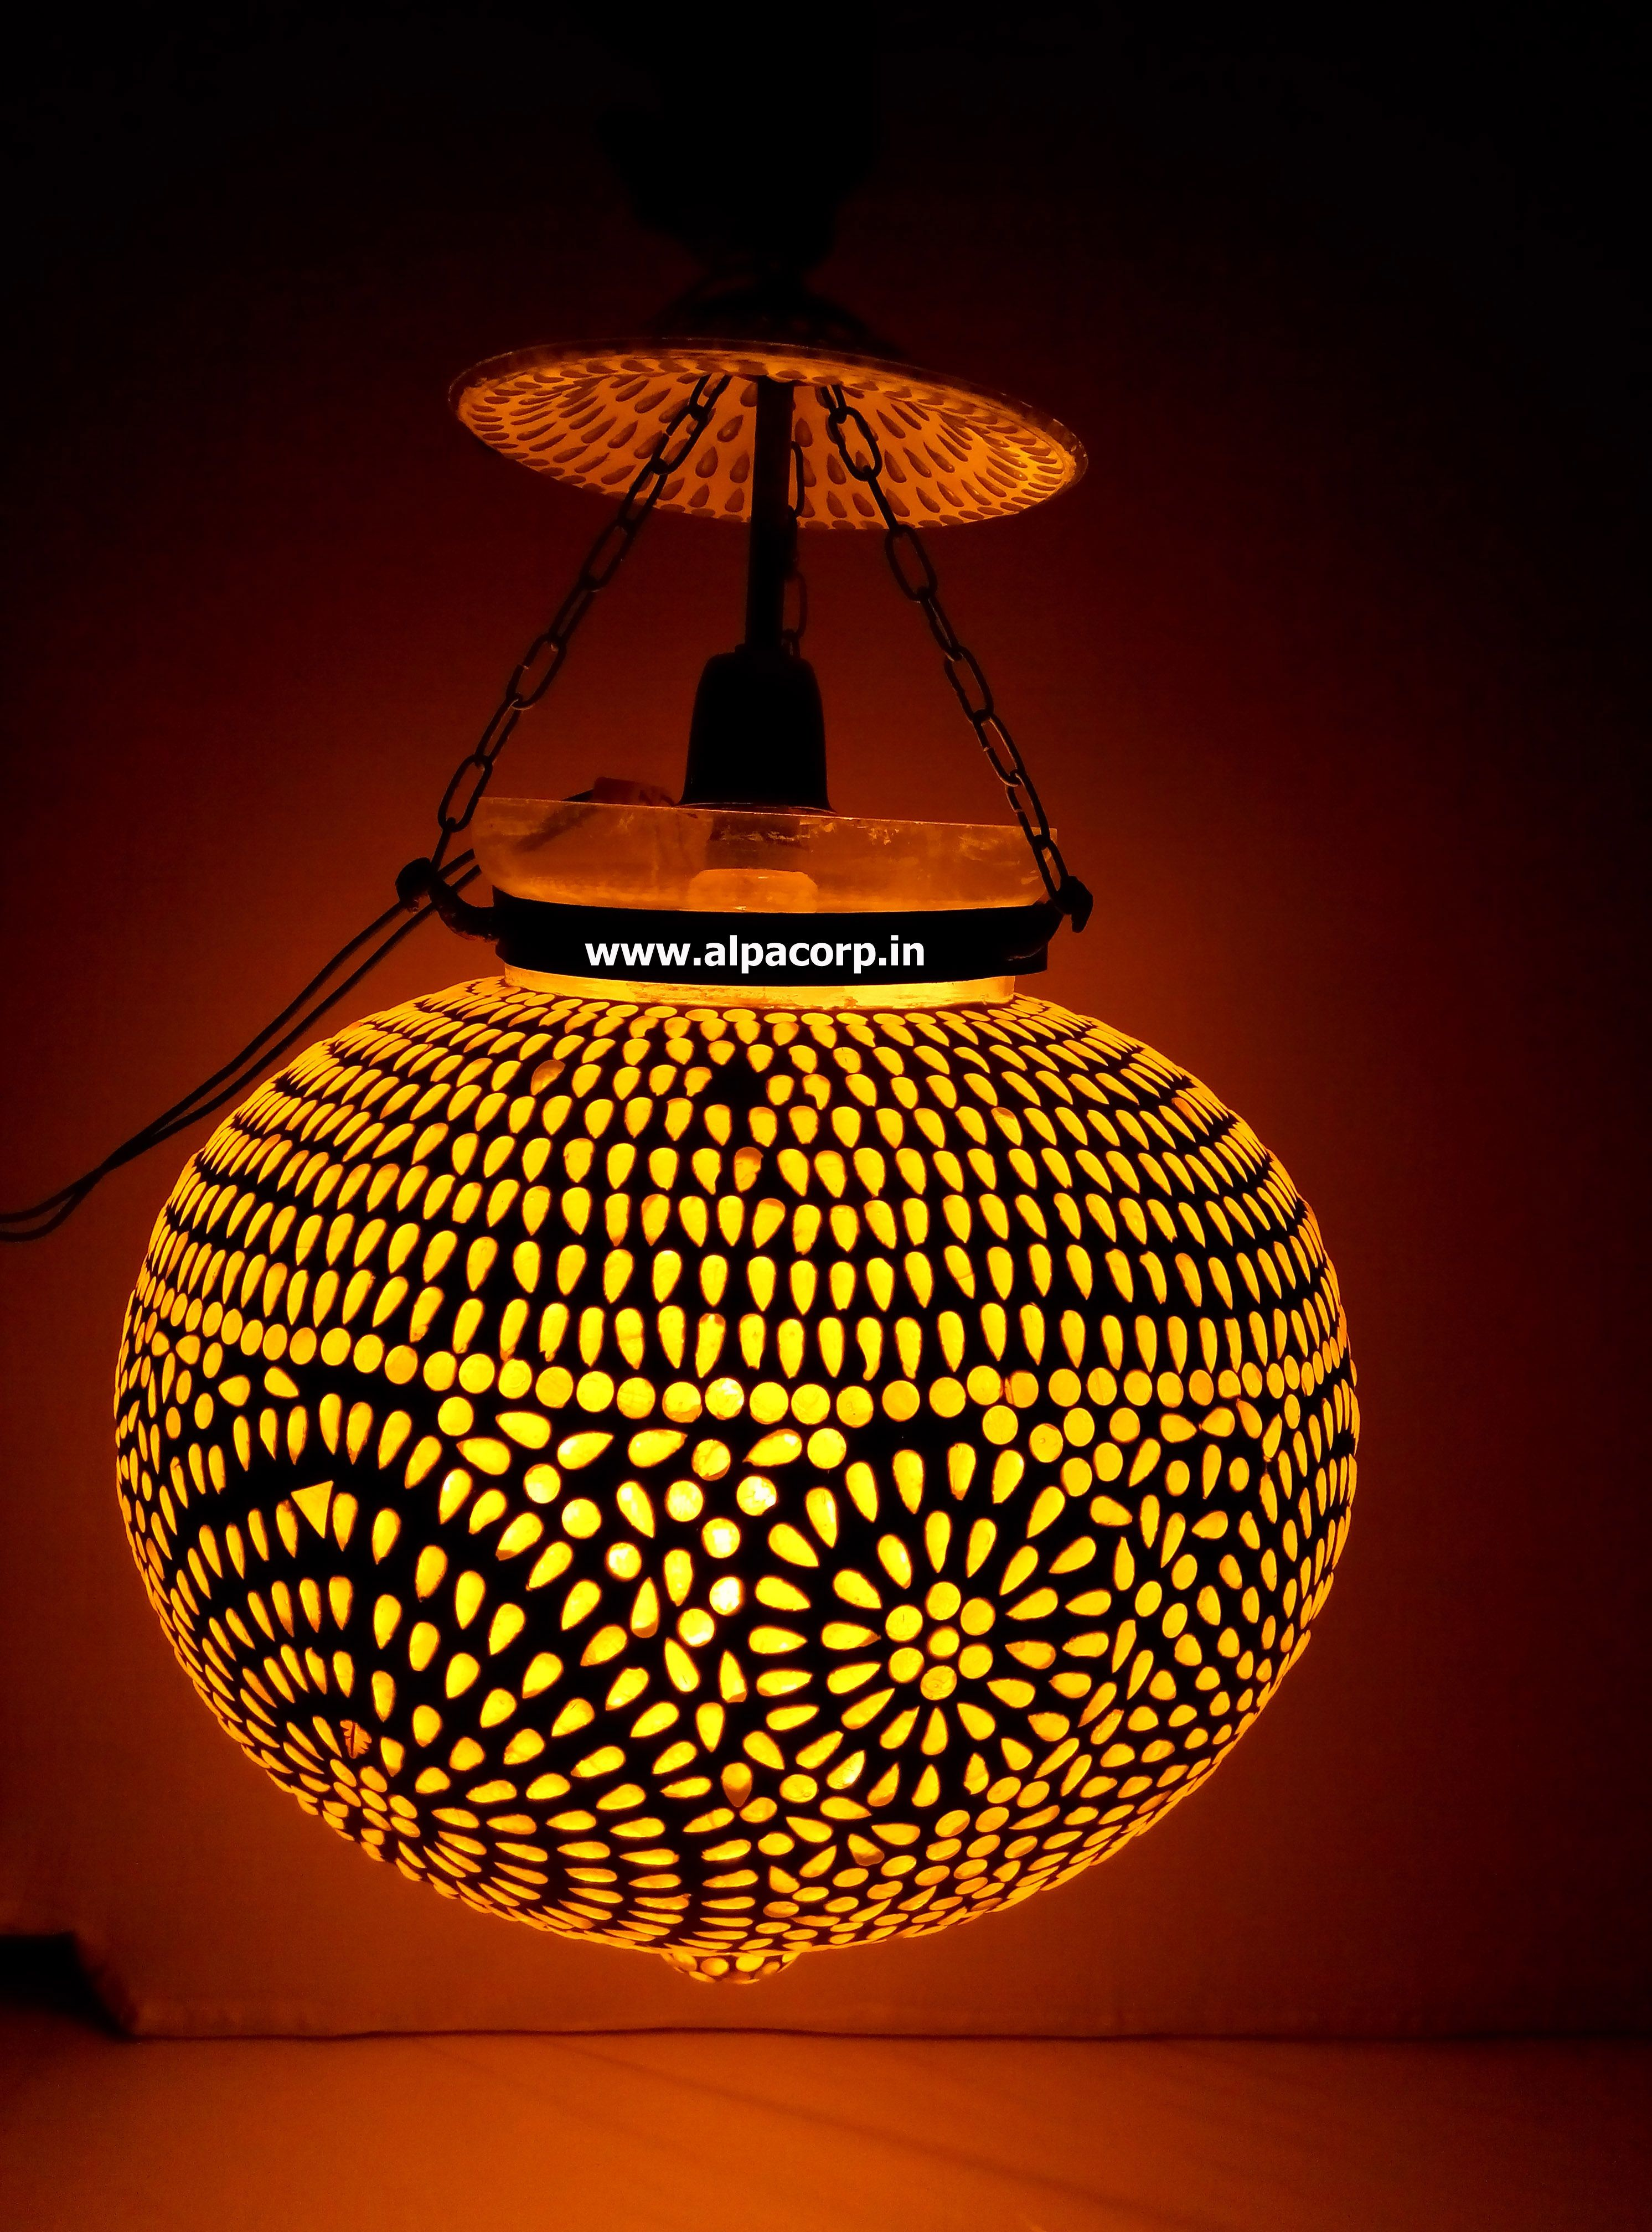 Night lamps india - Hanging Night Lamp From India By Alpa Corp Www Facebook Com Alpacorp